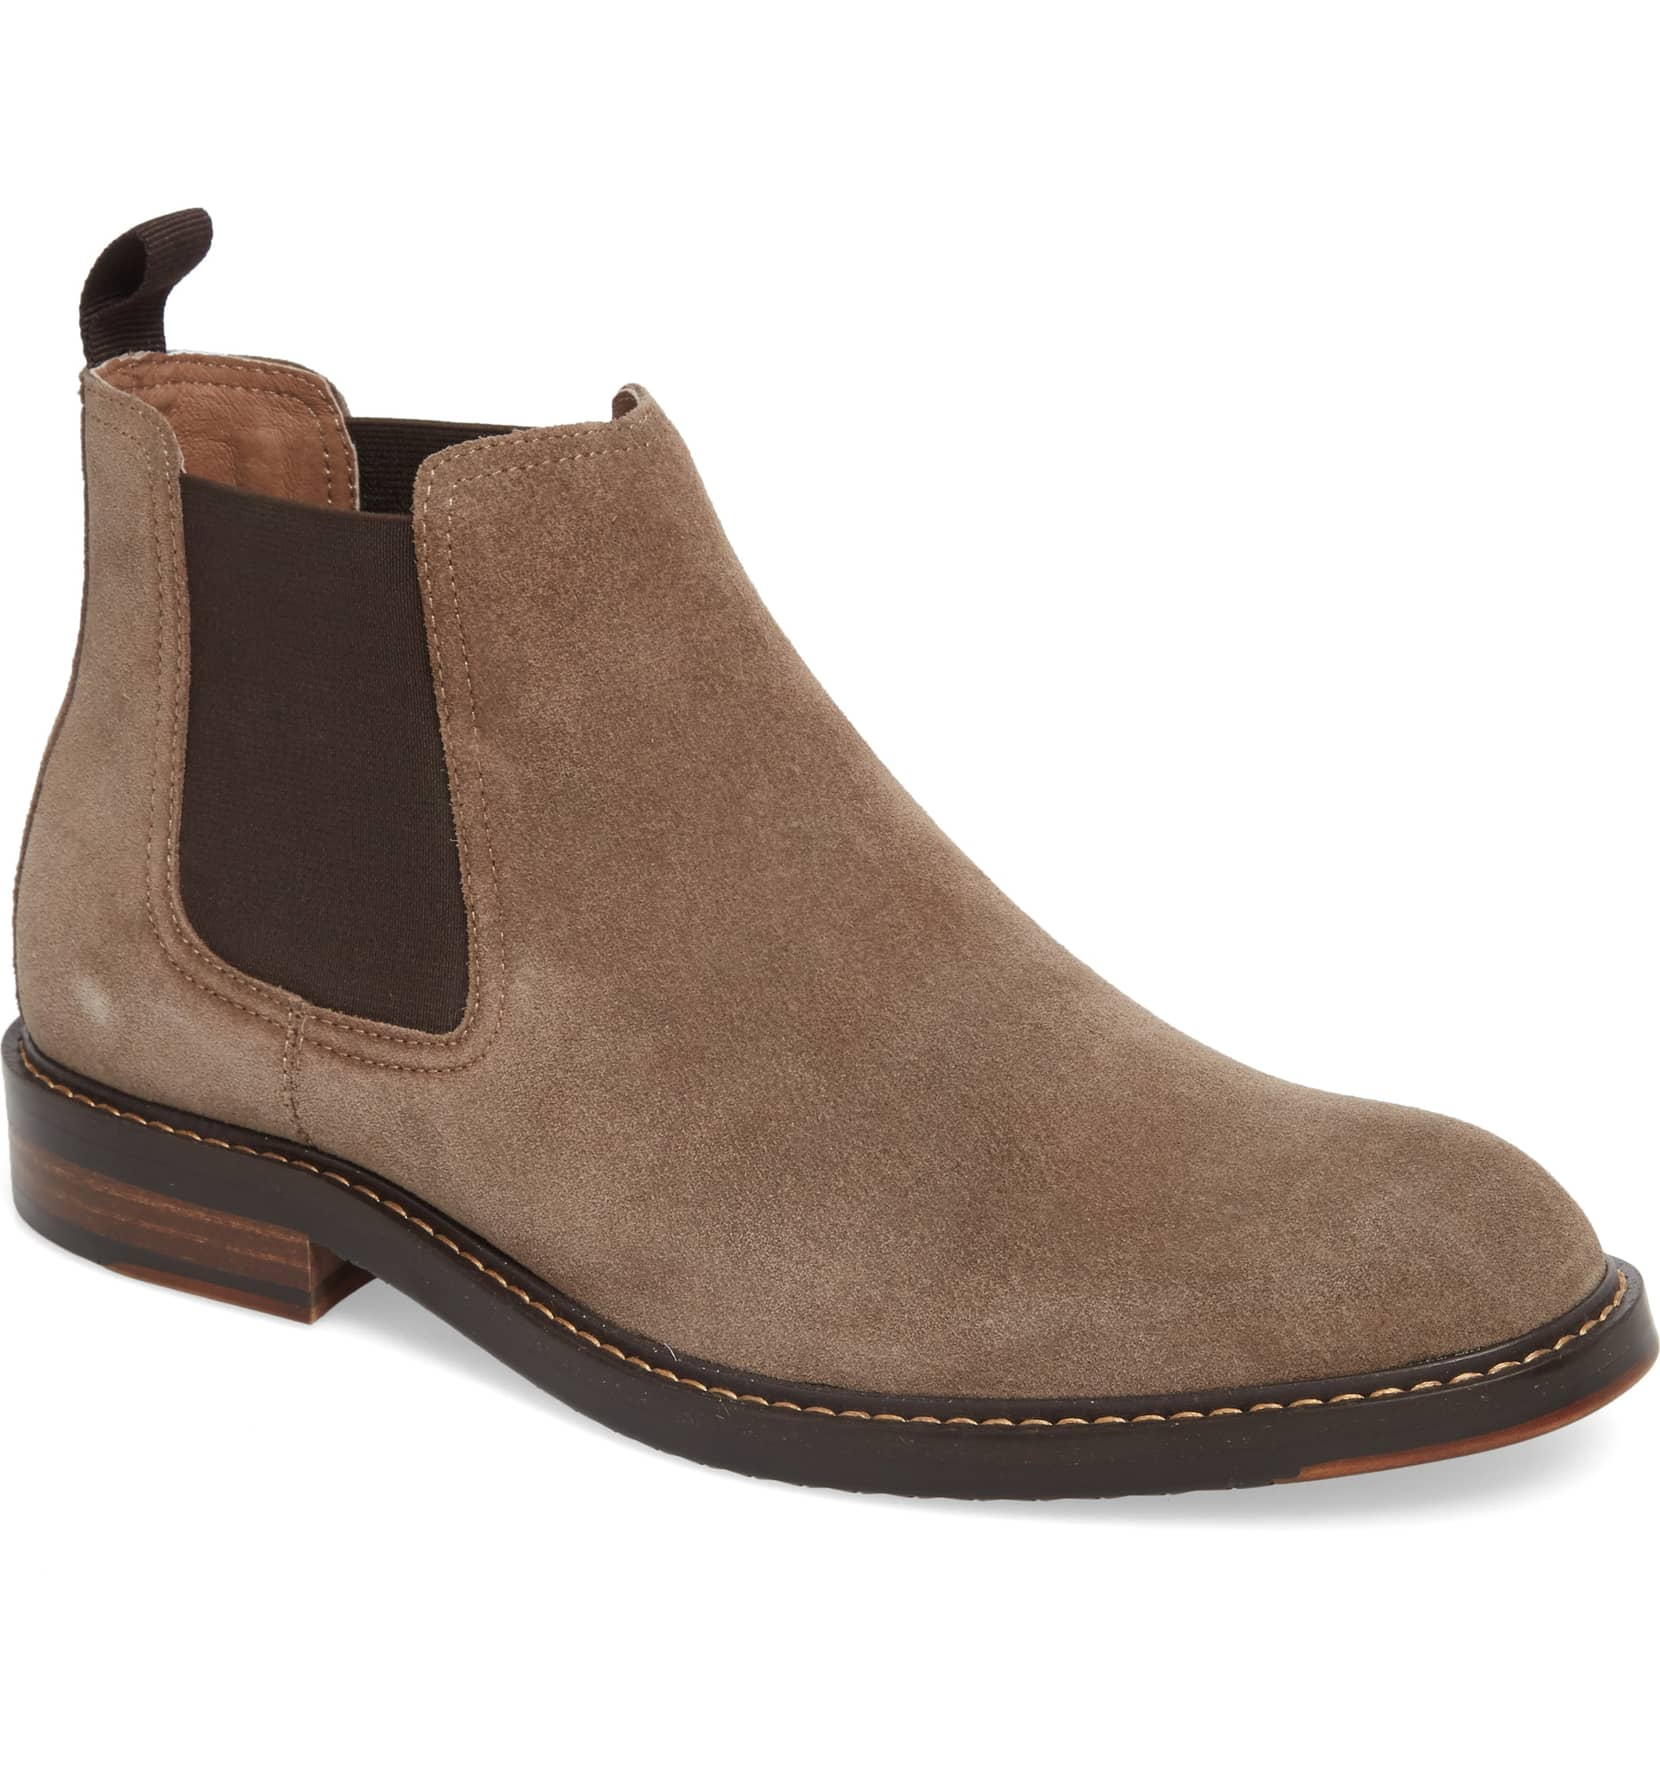 Brooks Chelsea Boot, $124.95.{ }The men in our lives work hard! Gift them something they'll feel appreciated in this holiday season! (Image courtesy of Nordstrom).